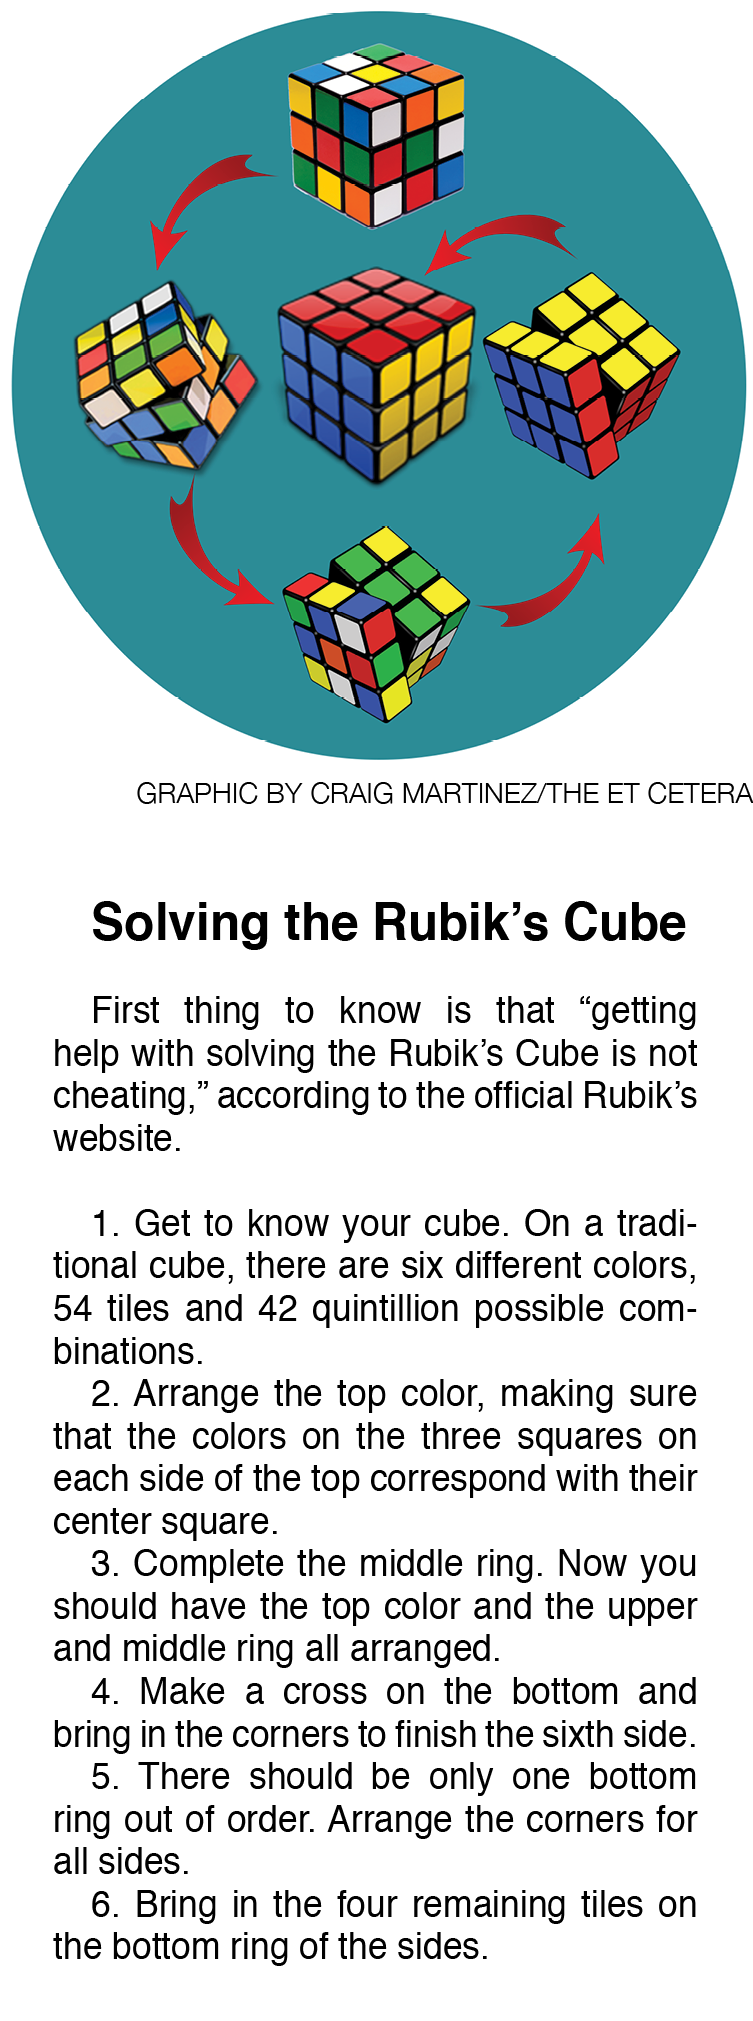 0309 Rubiks cube graphic